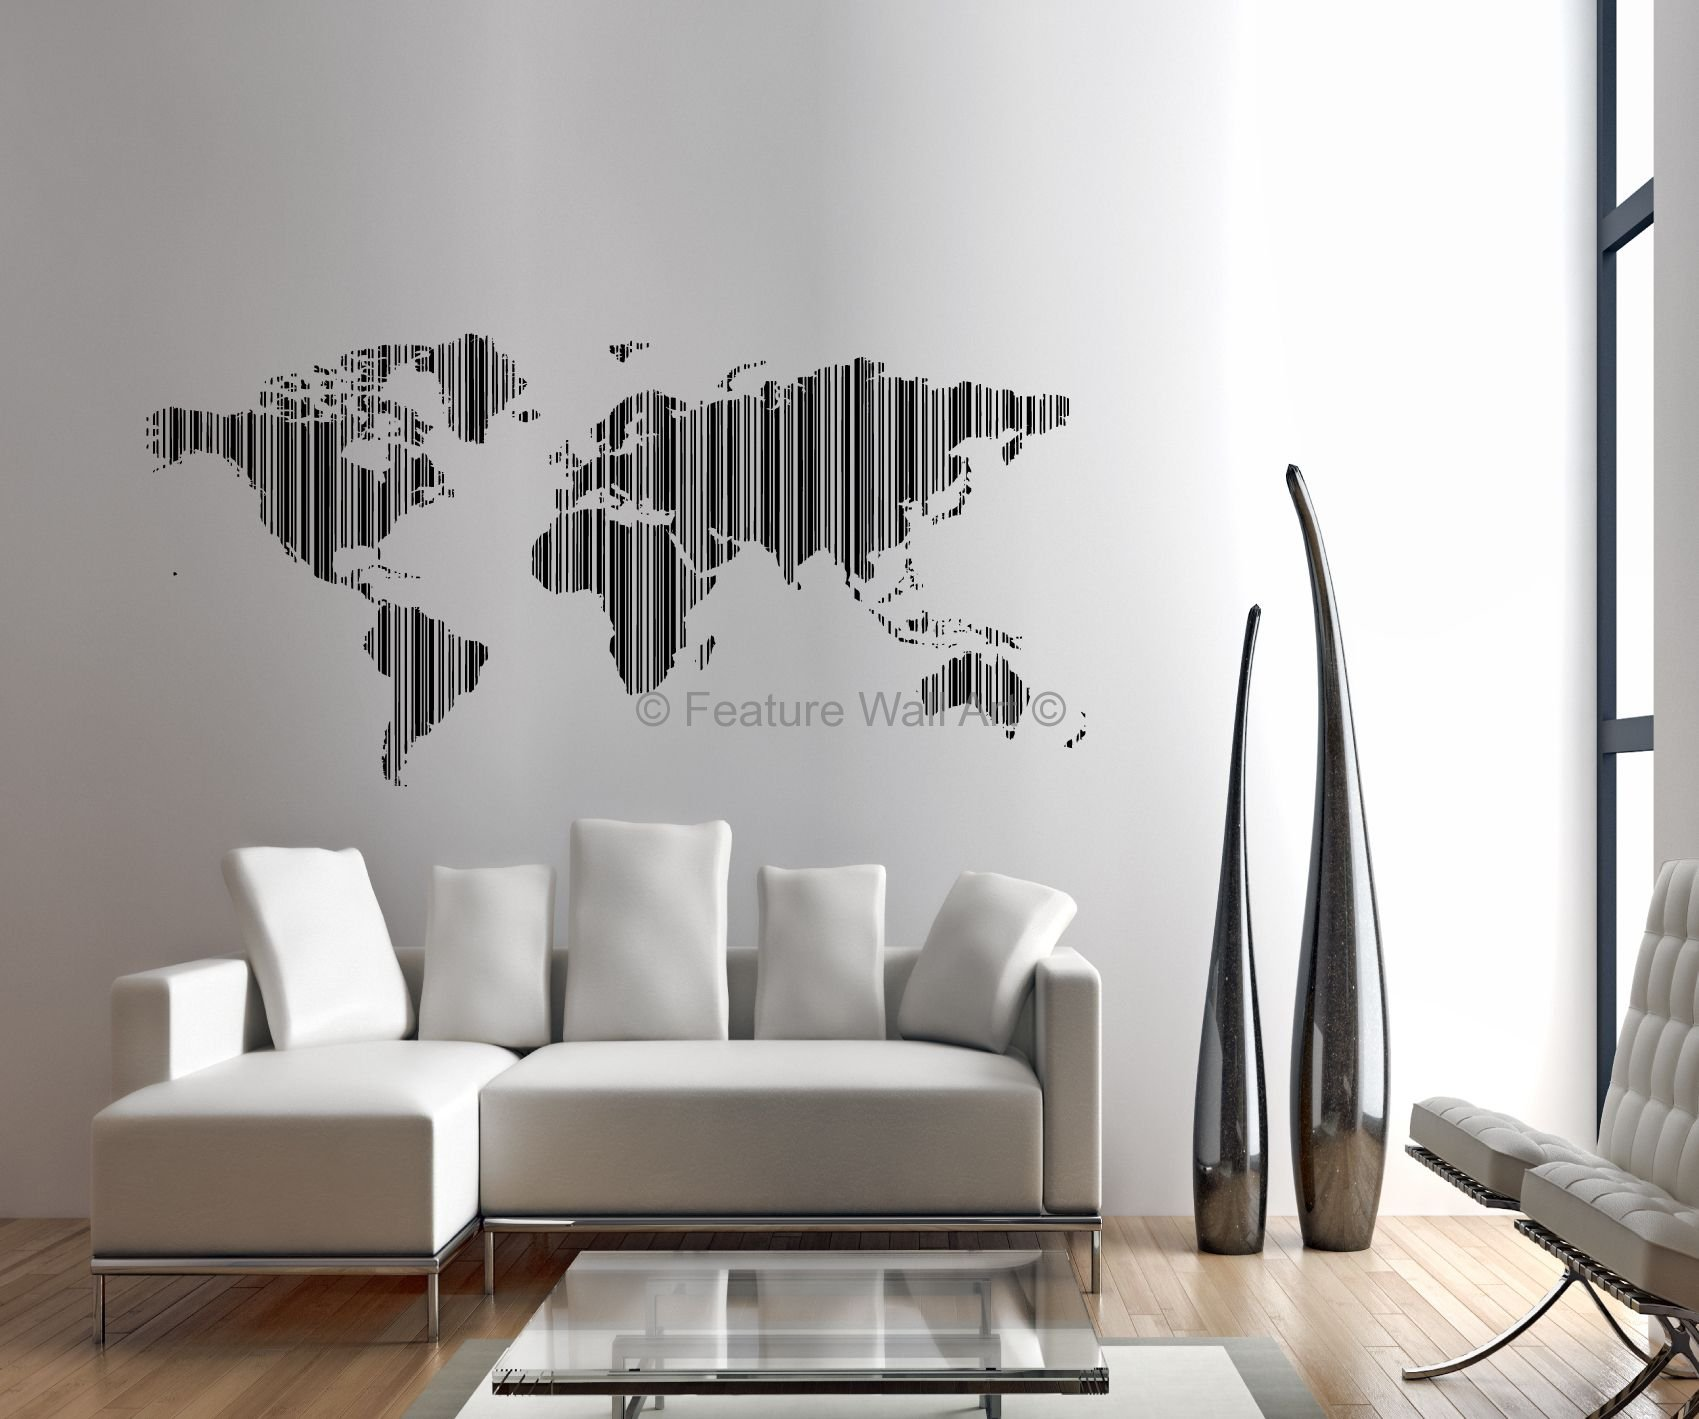 Incorporate maps into your wall art projects. & 34 Beautiful Wall Art Ideas And Inspiration